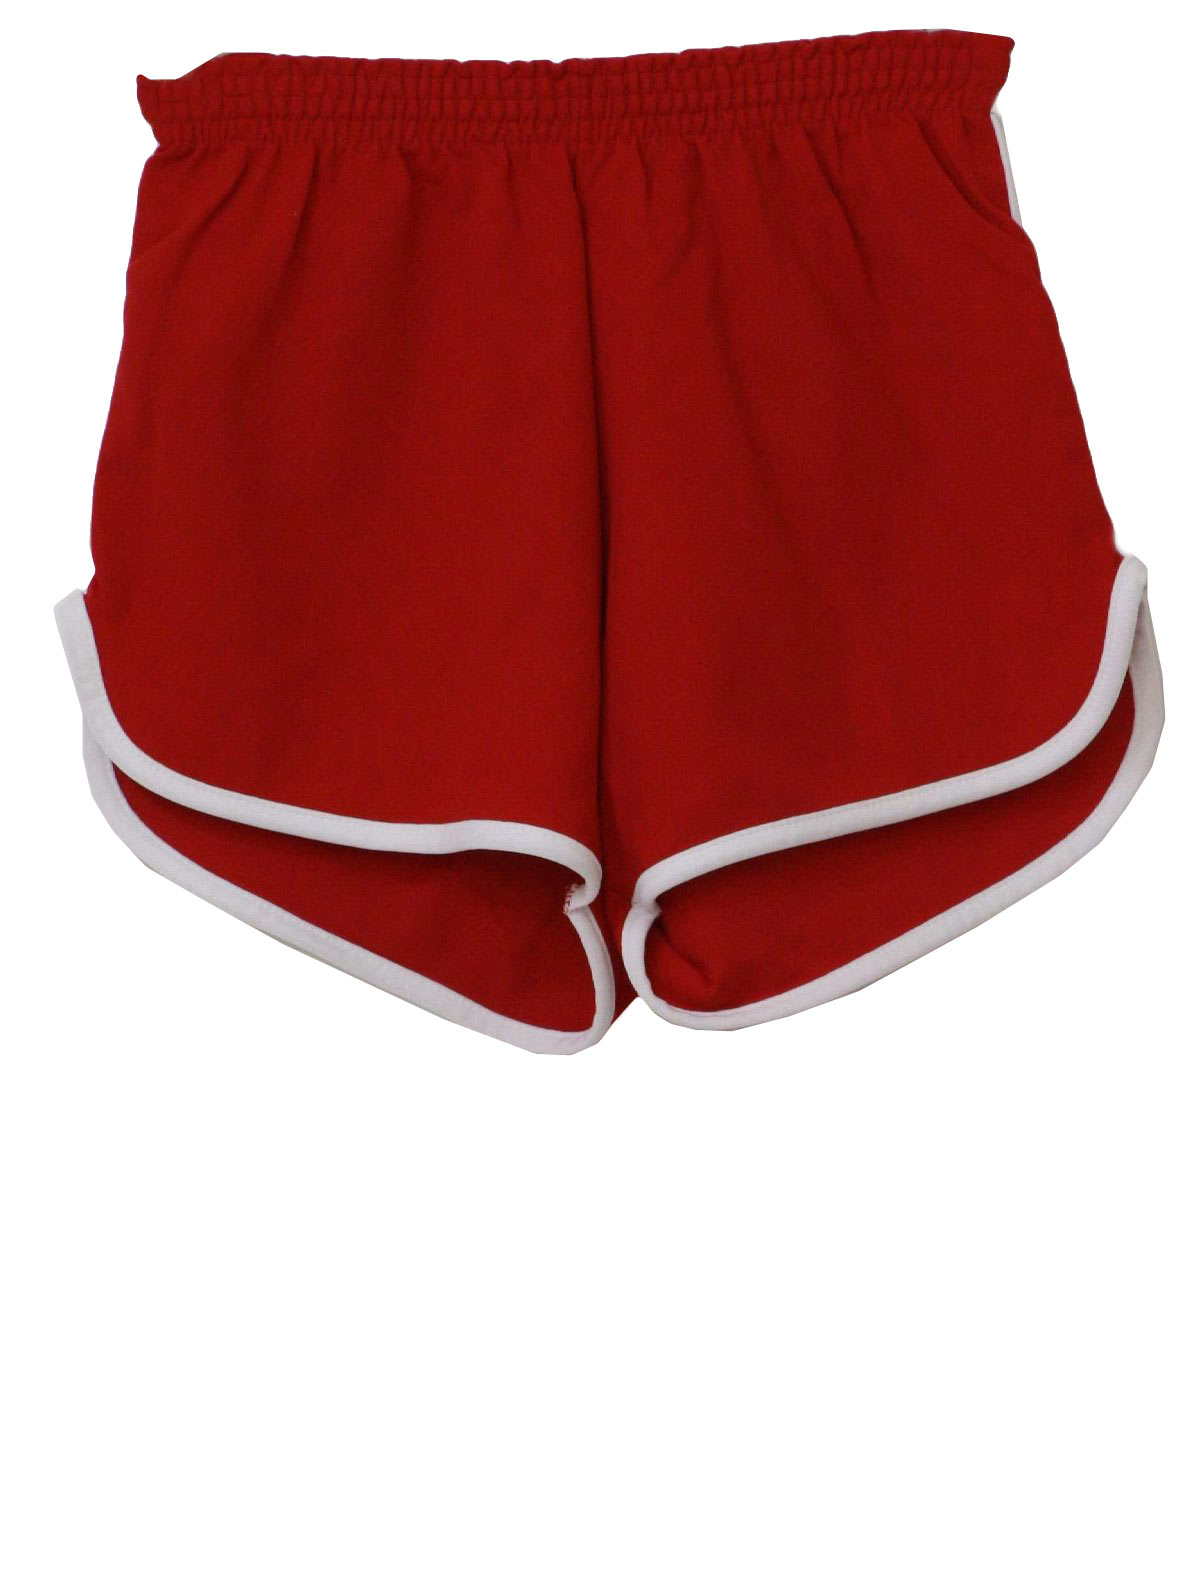 1980s Vintage Shorts: 80s -National Gym Wear- Mens red and white ...